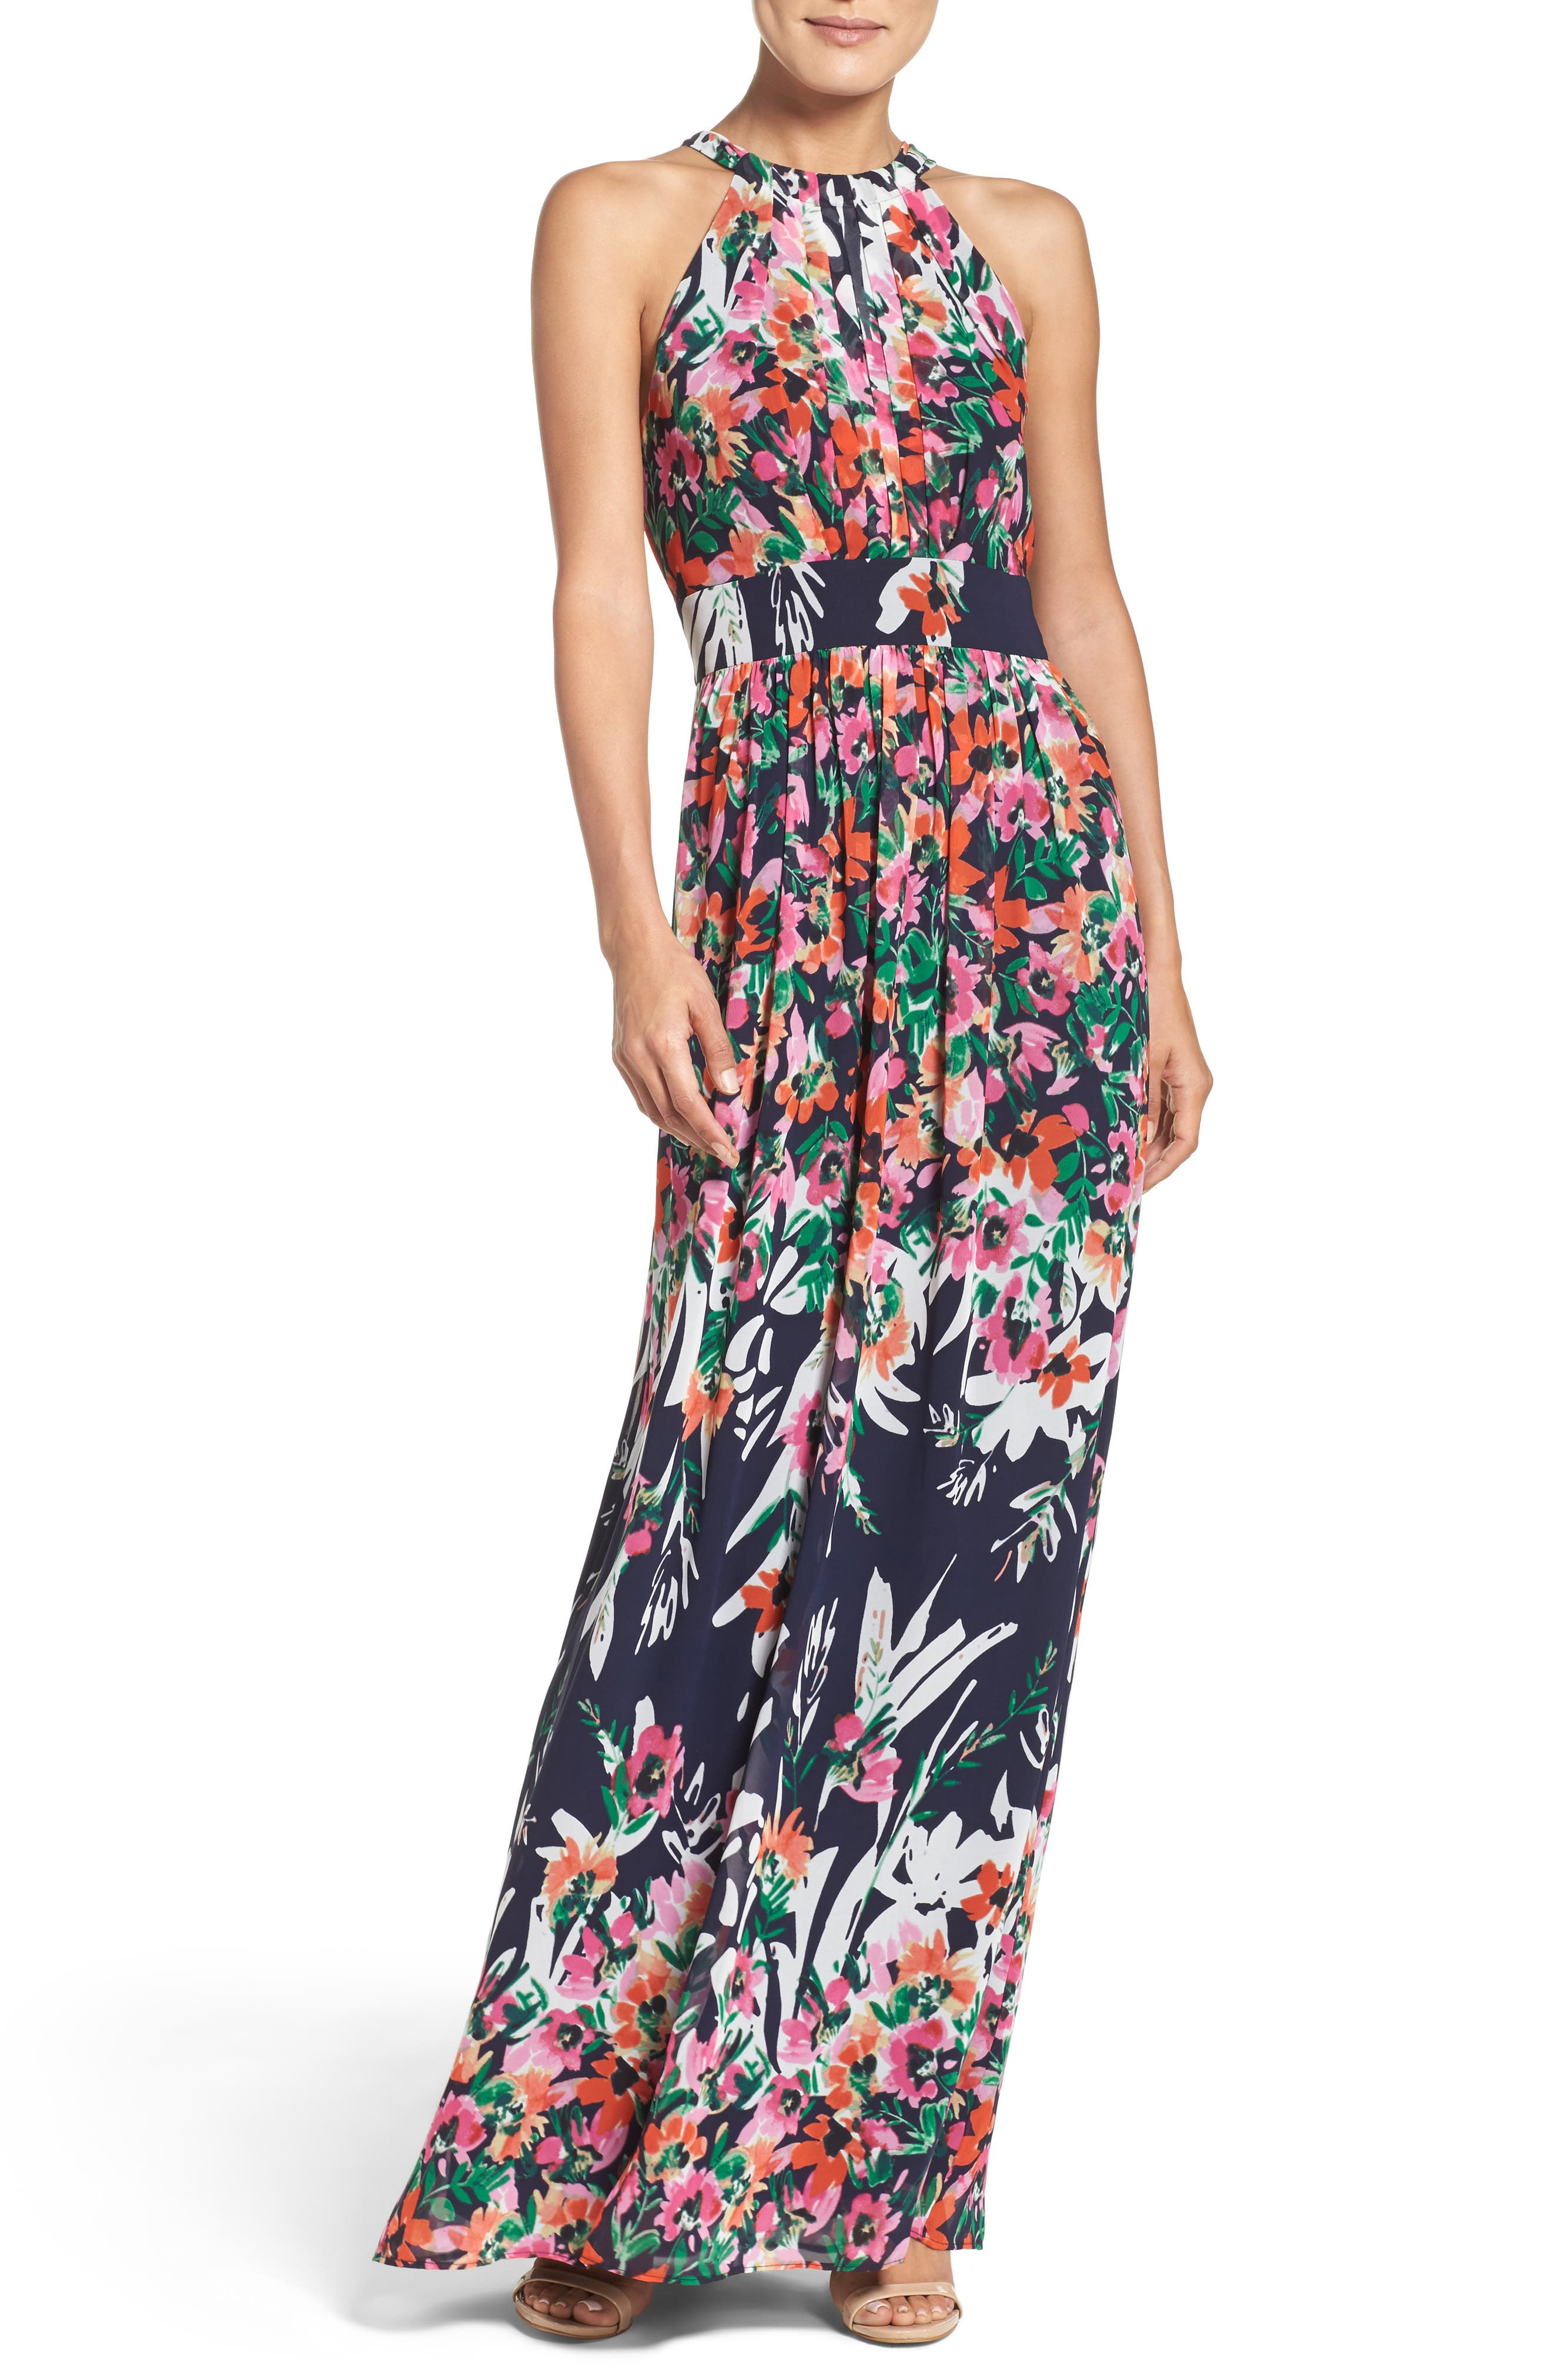 Grandiflora maxi dress anthropologie store